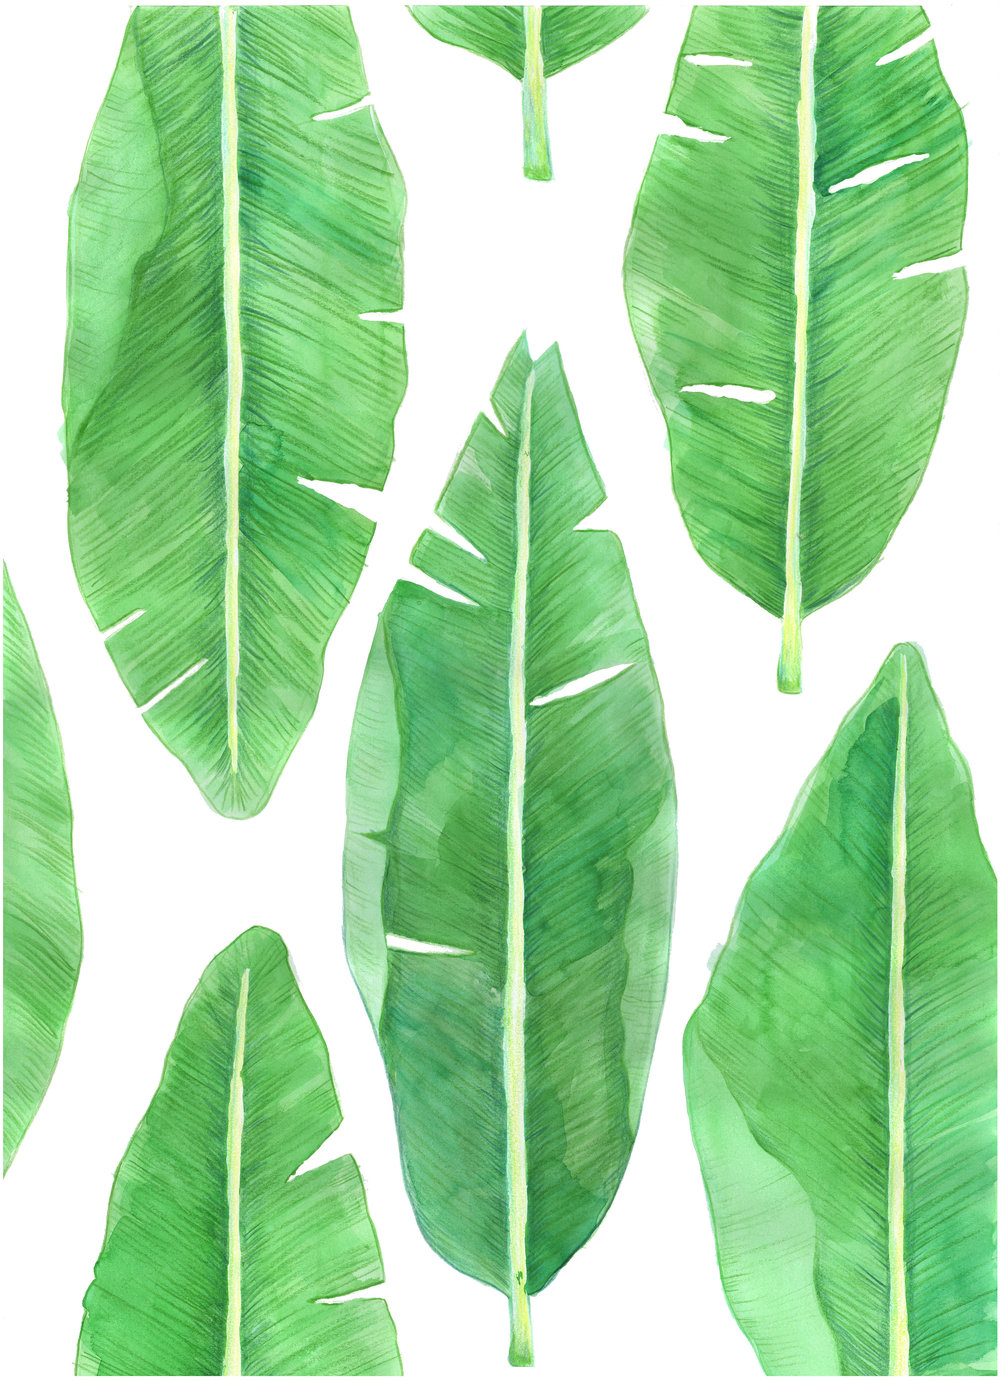 Banana Leaves.jpg